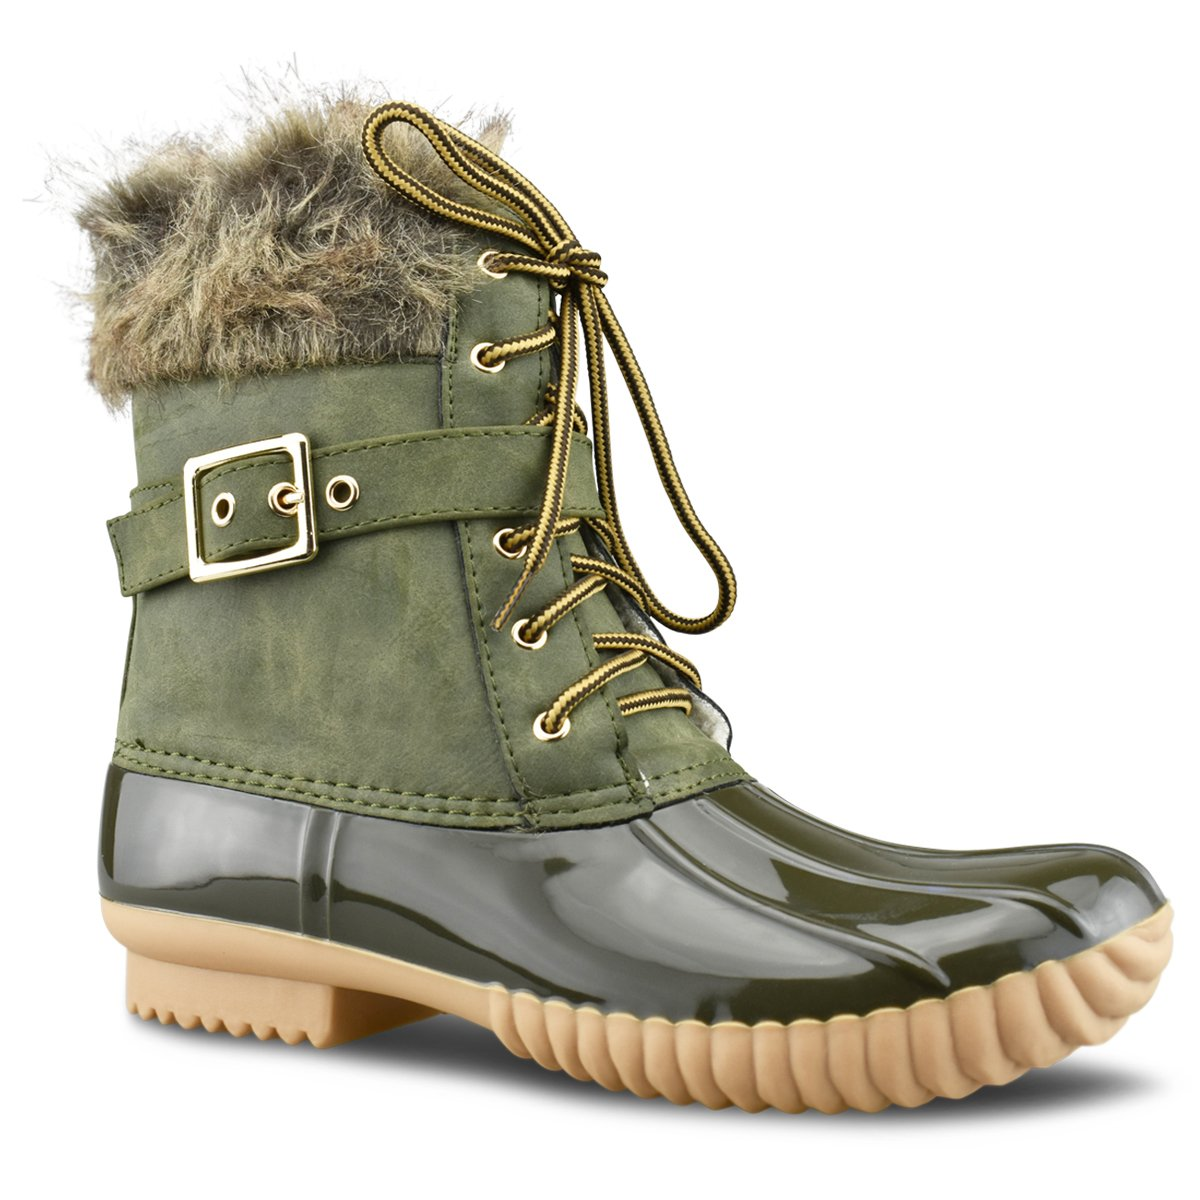 Premier Standard Women Stitching Lace Up Side Zip Waterproof Insulated Snow Boots B078MQFWCC 11 B(M) US|Premier Olive